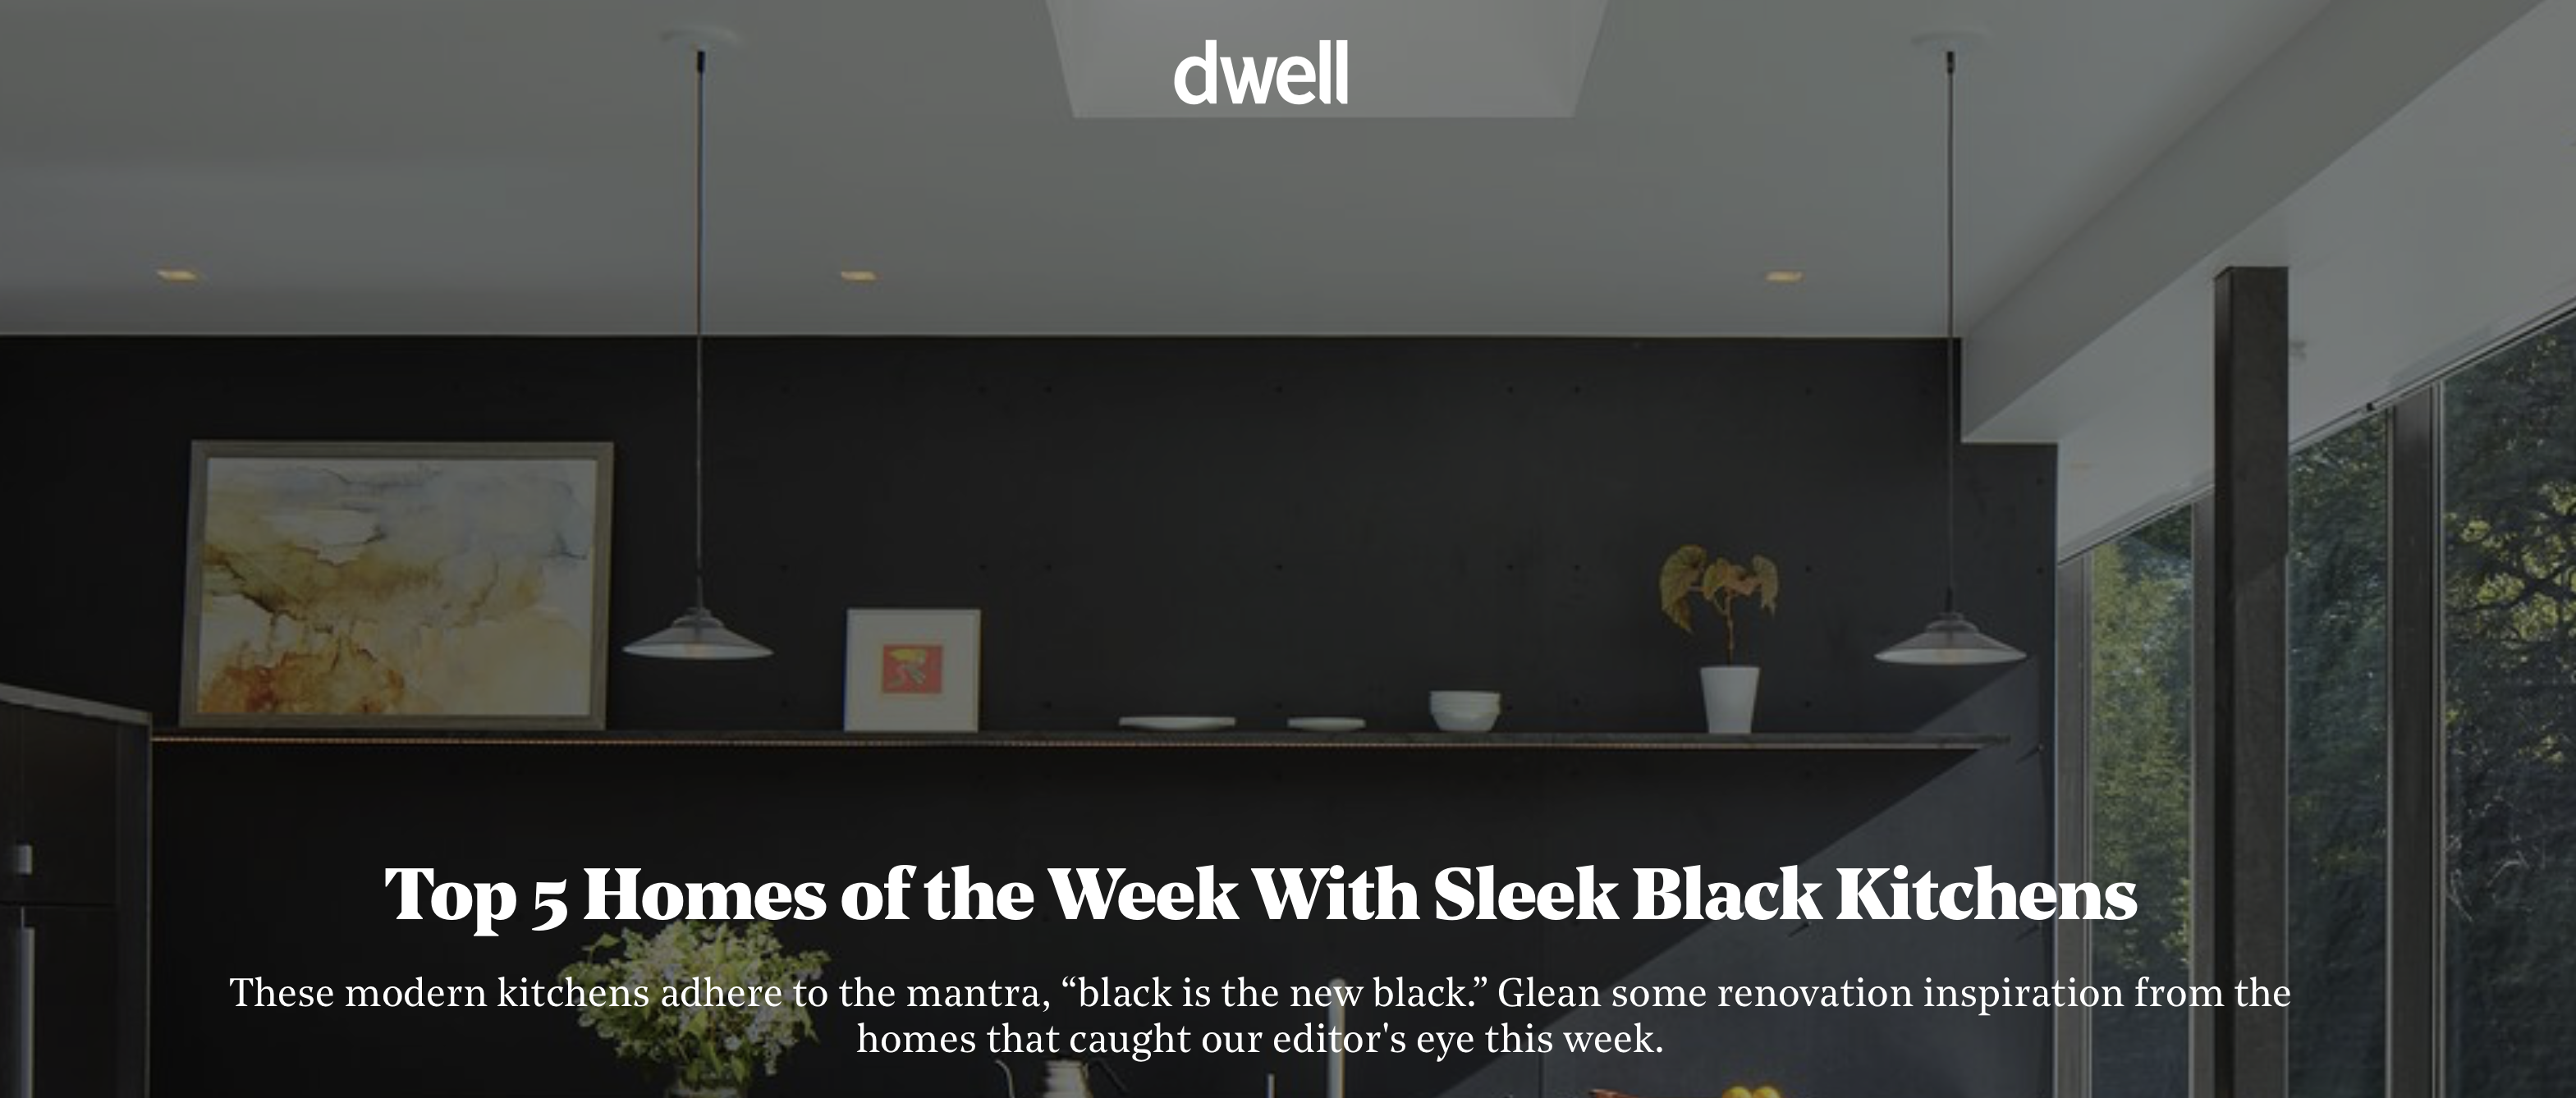 DWELL Magazine: Top 5 Homes of the Week with Sleek Black Kitchens